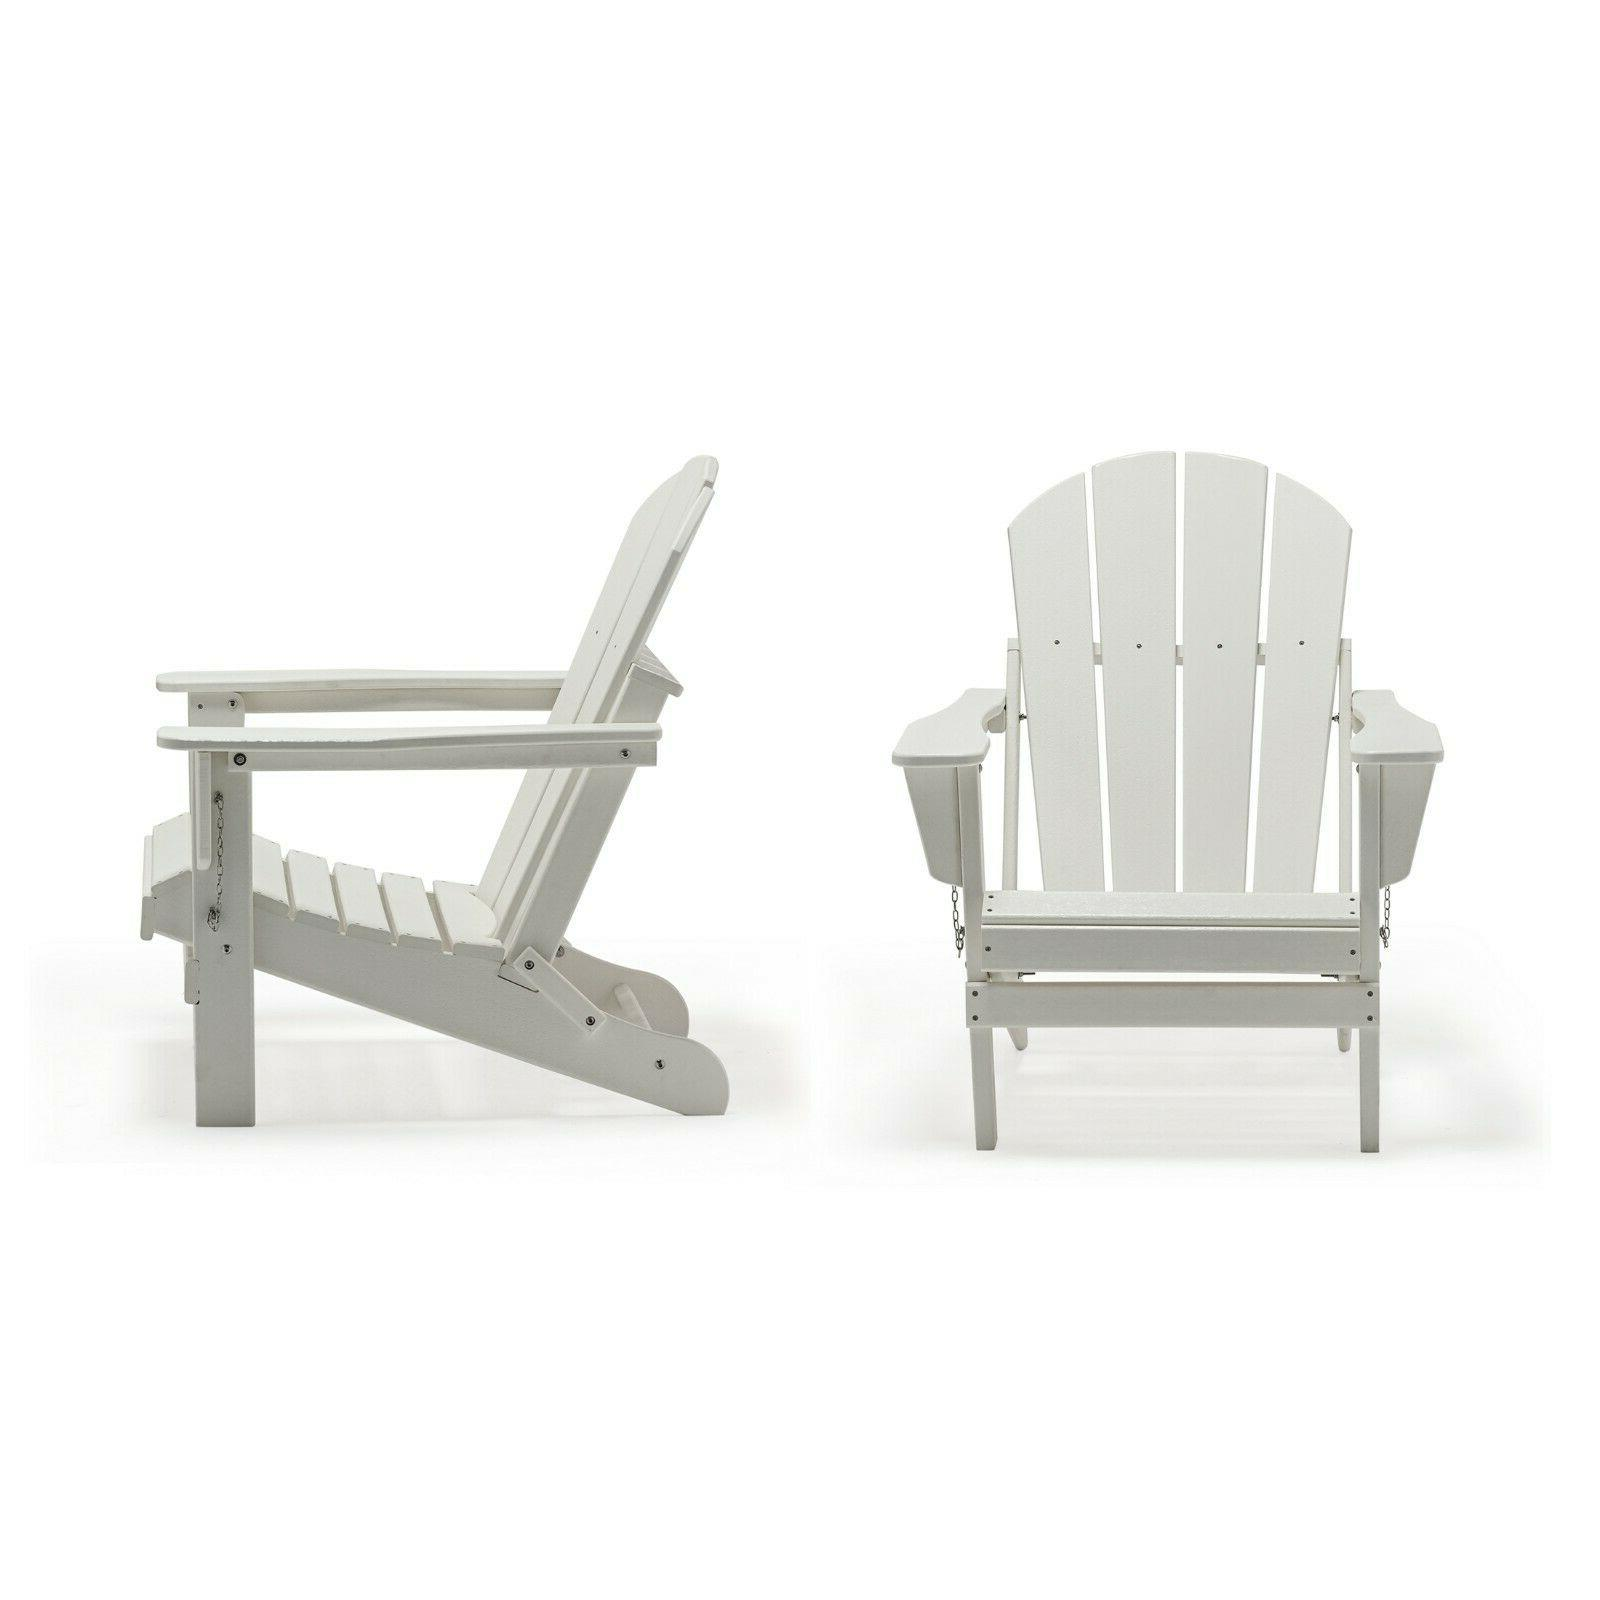 2 PCS Outdoor Poly Chairs Plastic Lounger